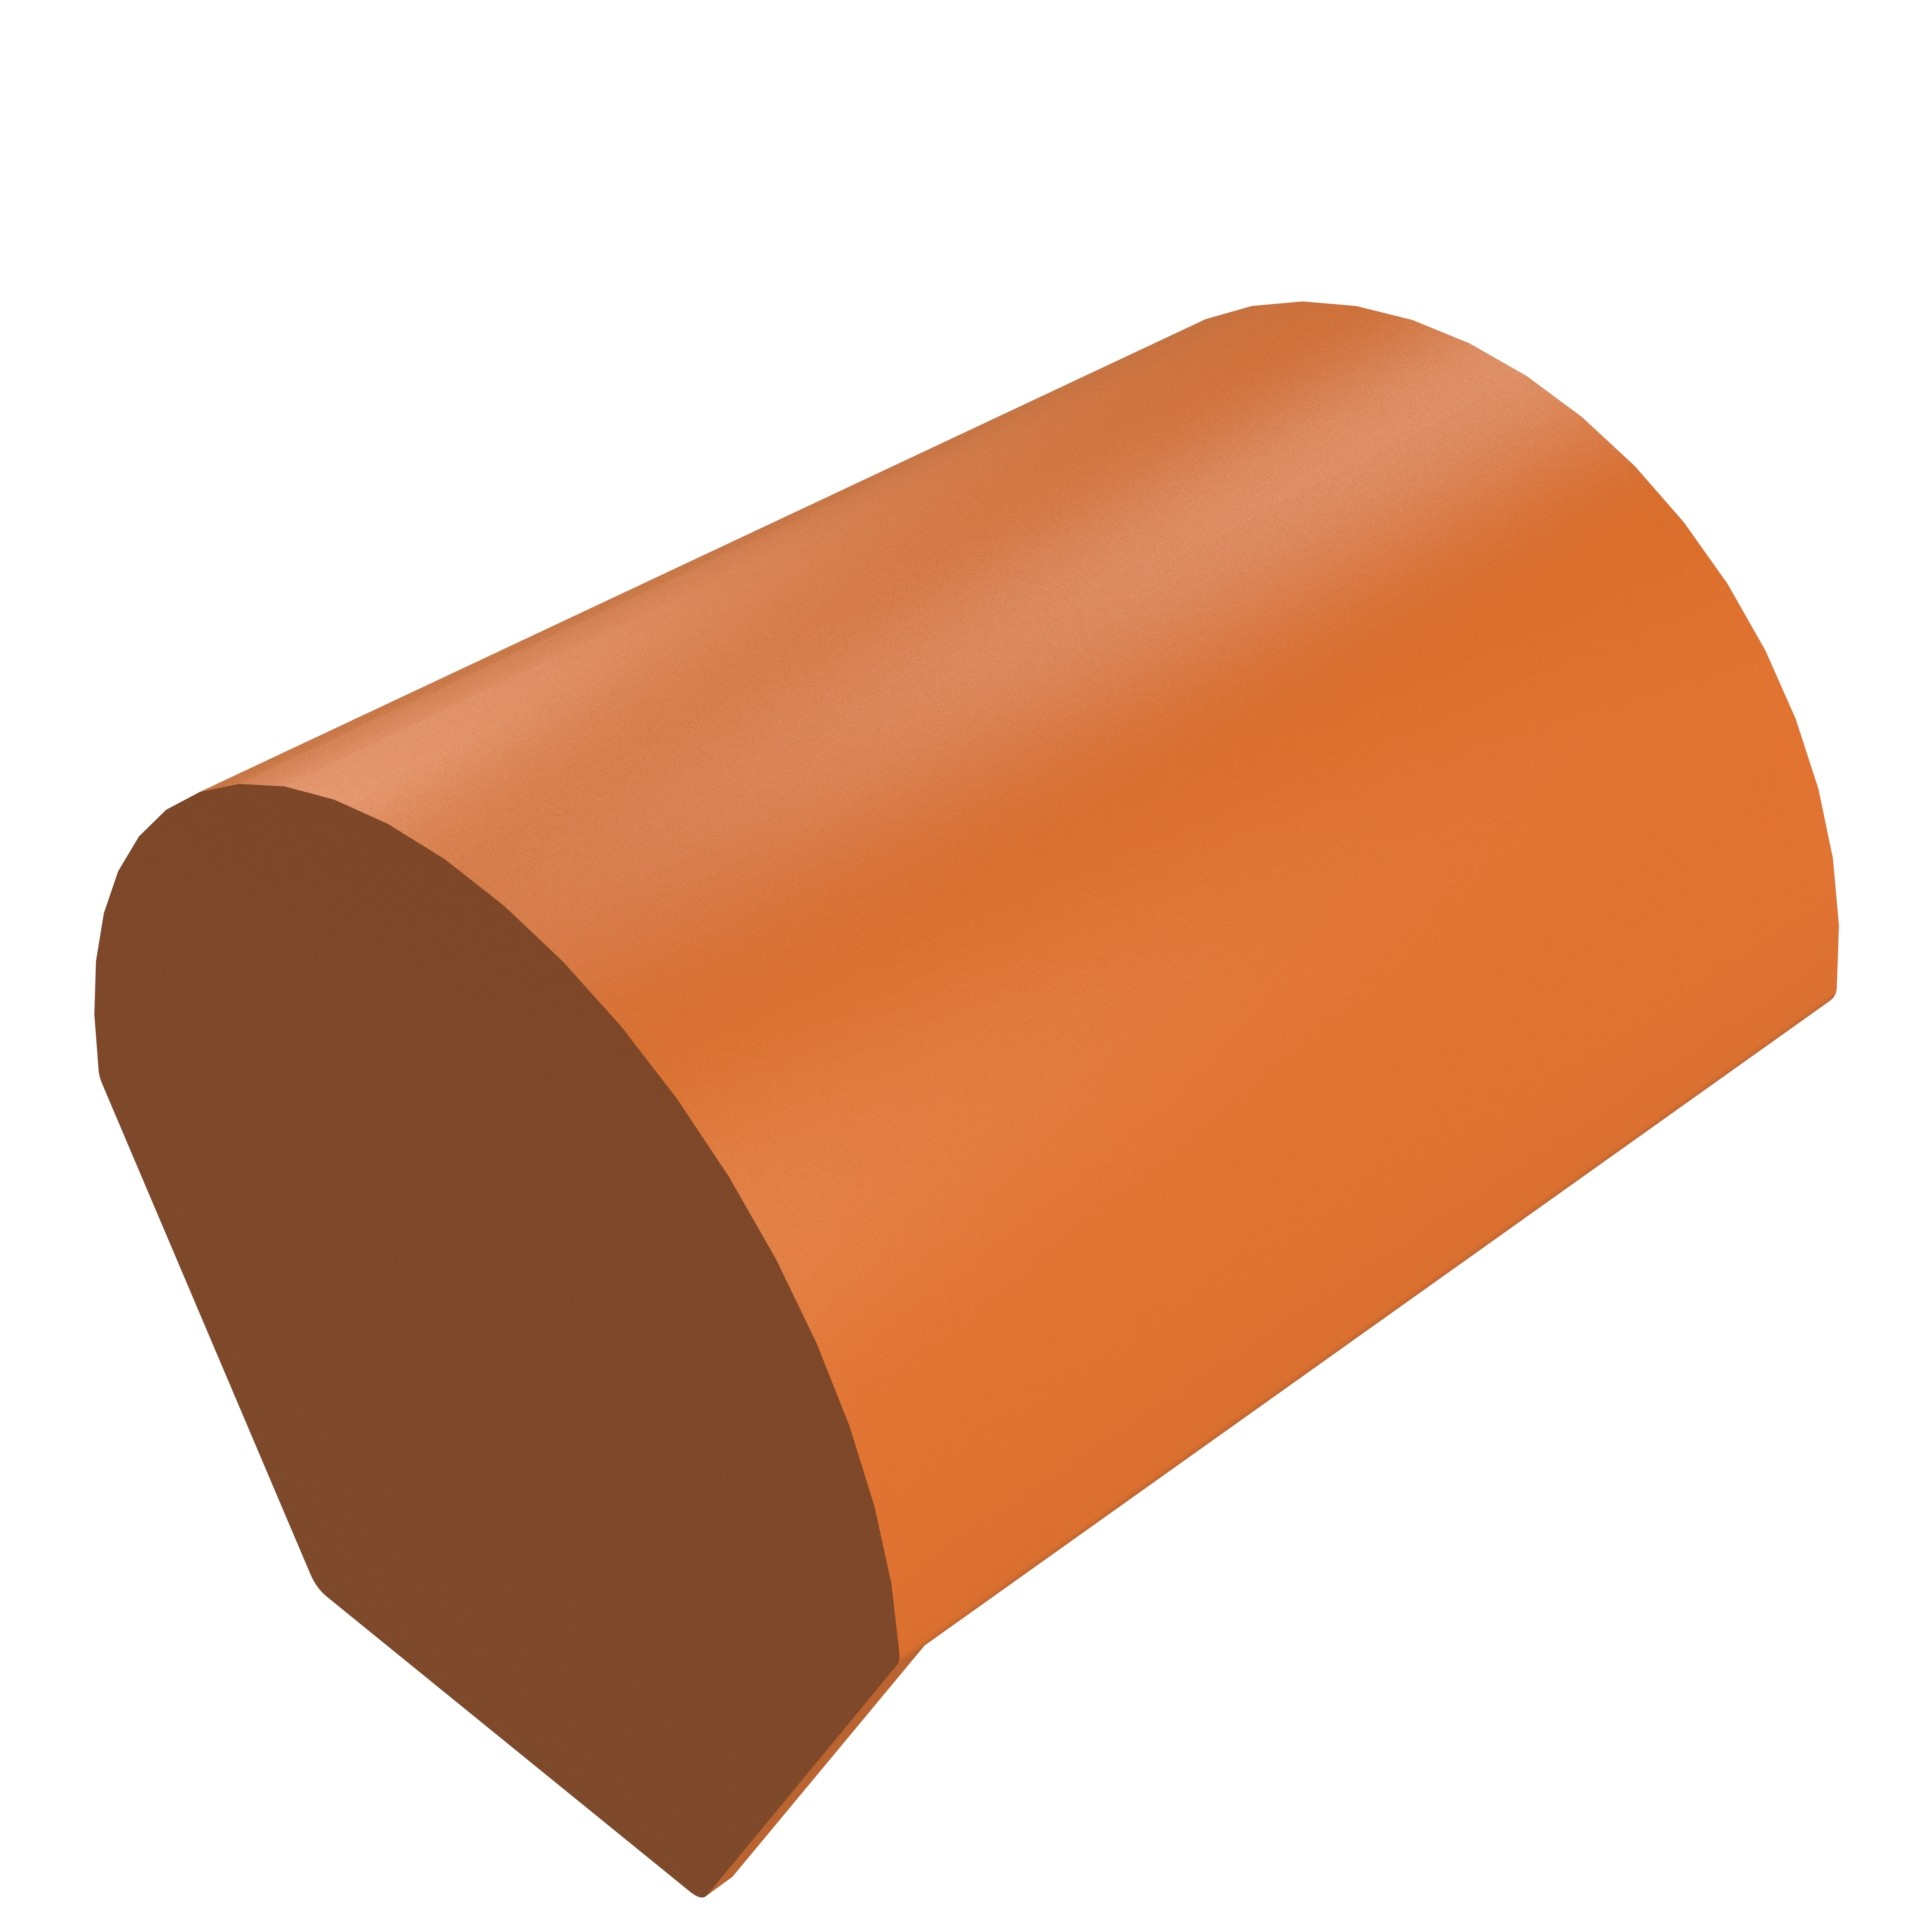 SANDTOFT TILES - Clay Half Round Risge With Block End